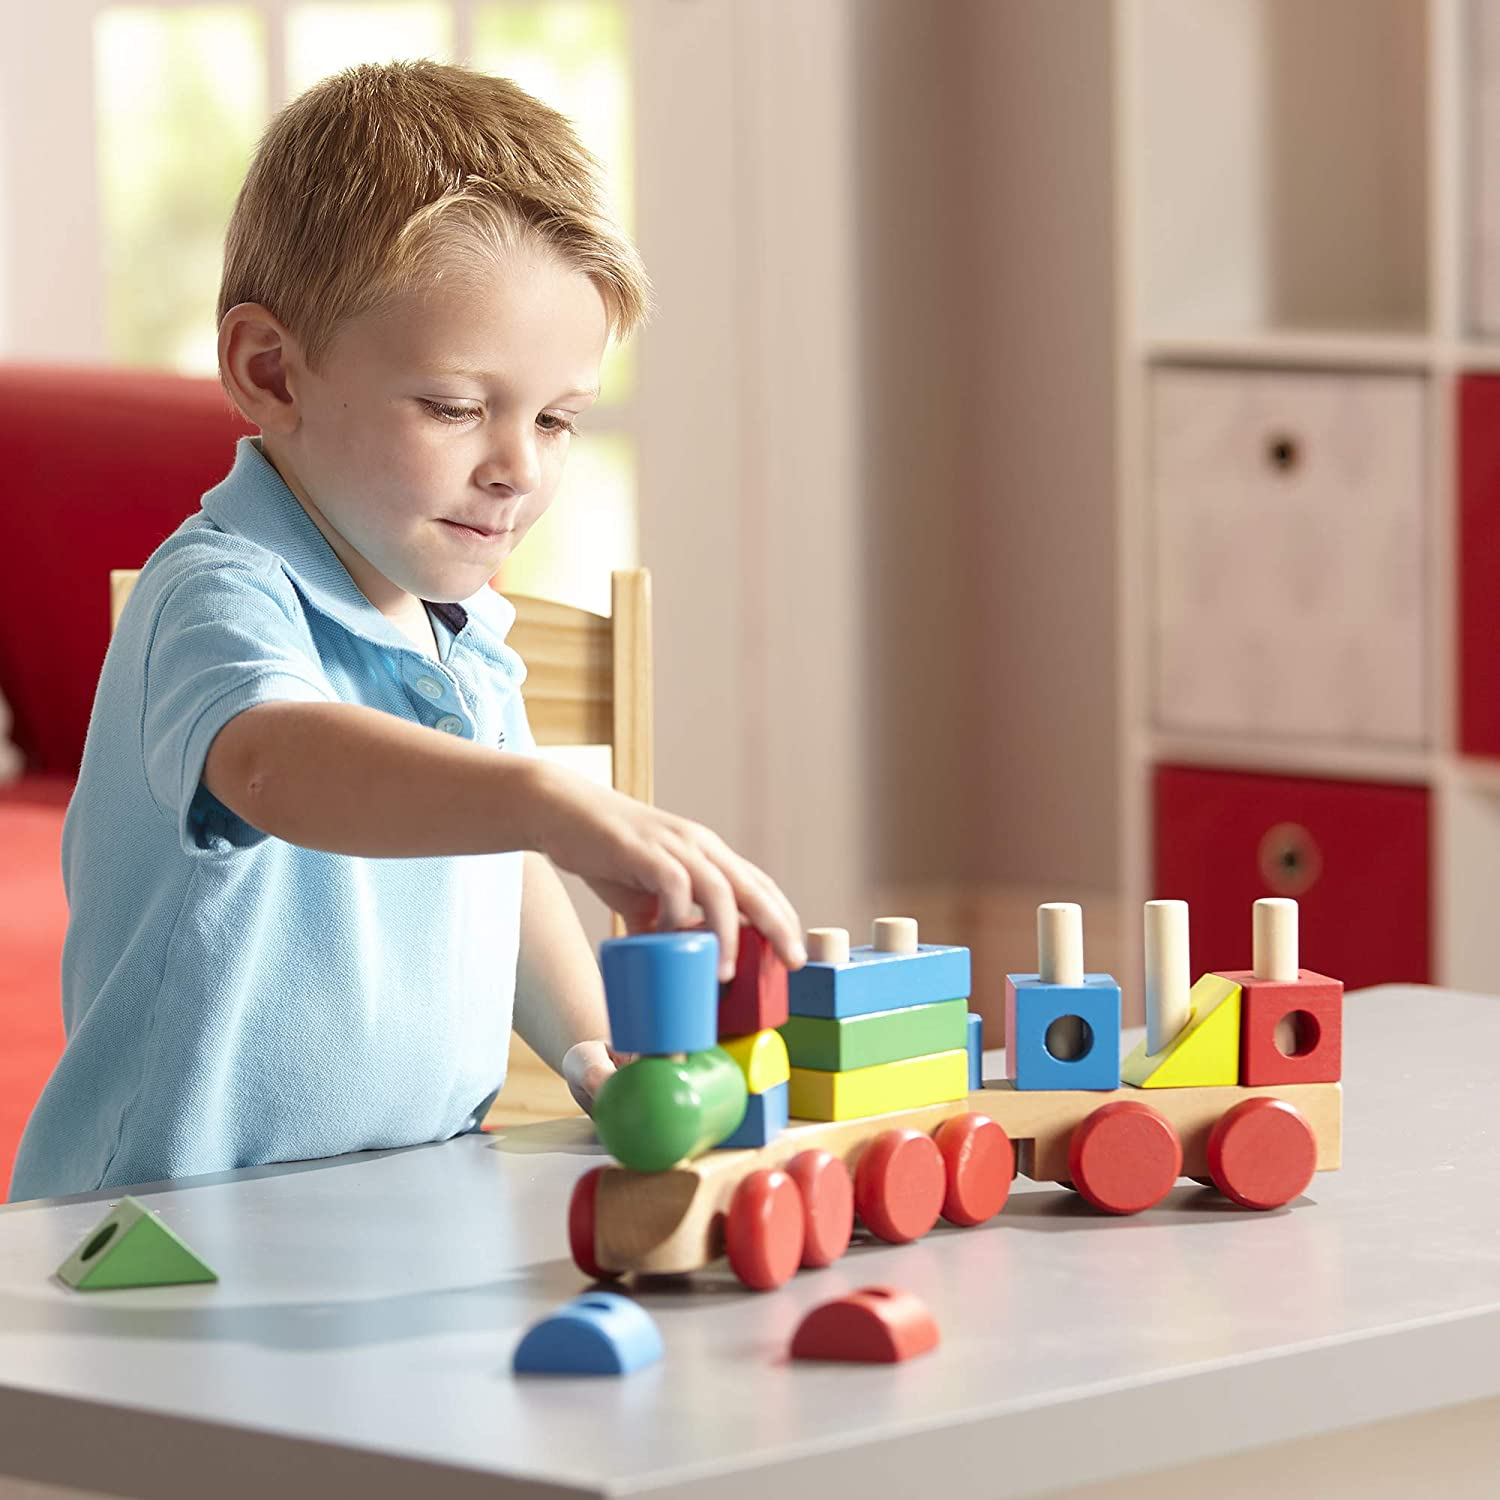 18 pcs Classic Wooden Toddler Toy Melissa /& Doug Stacking Train